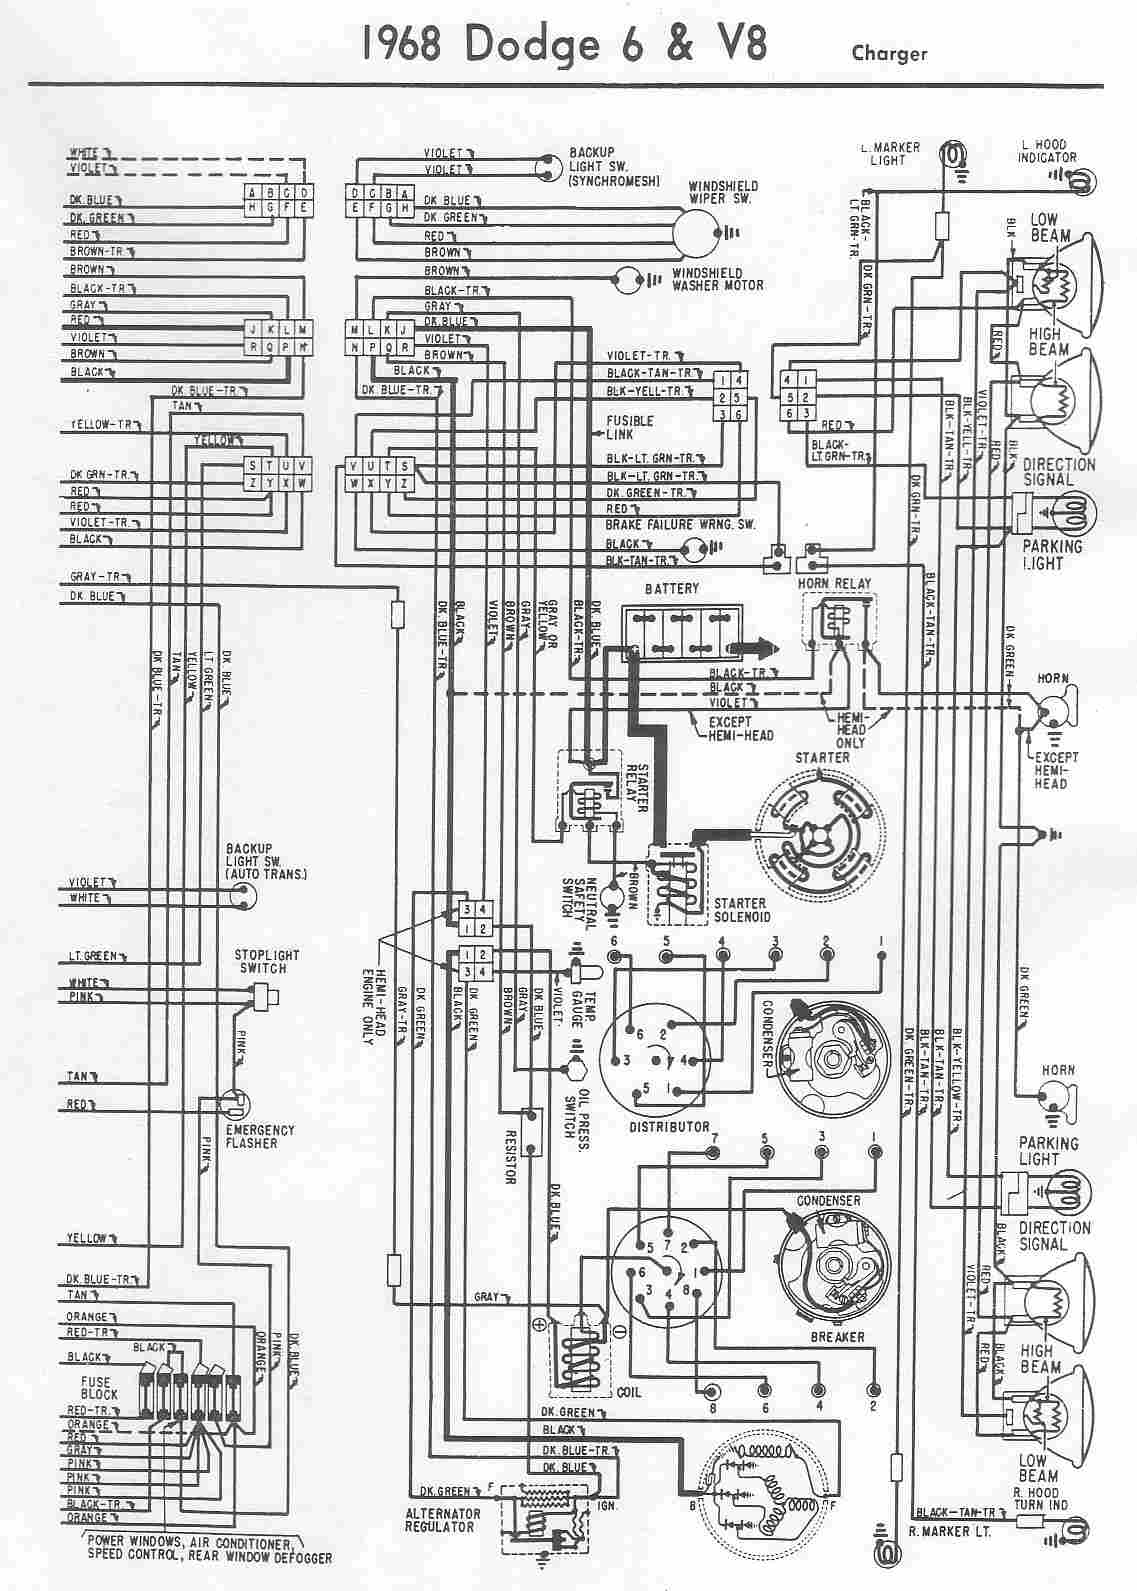 small resolution of 1968 gtx wiring diagram simple wiring post 1968 thunderbird wiring diagram 1968 gtx wiring diagram